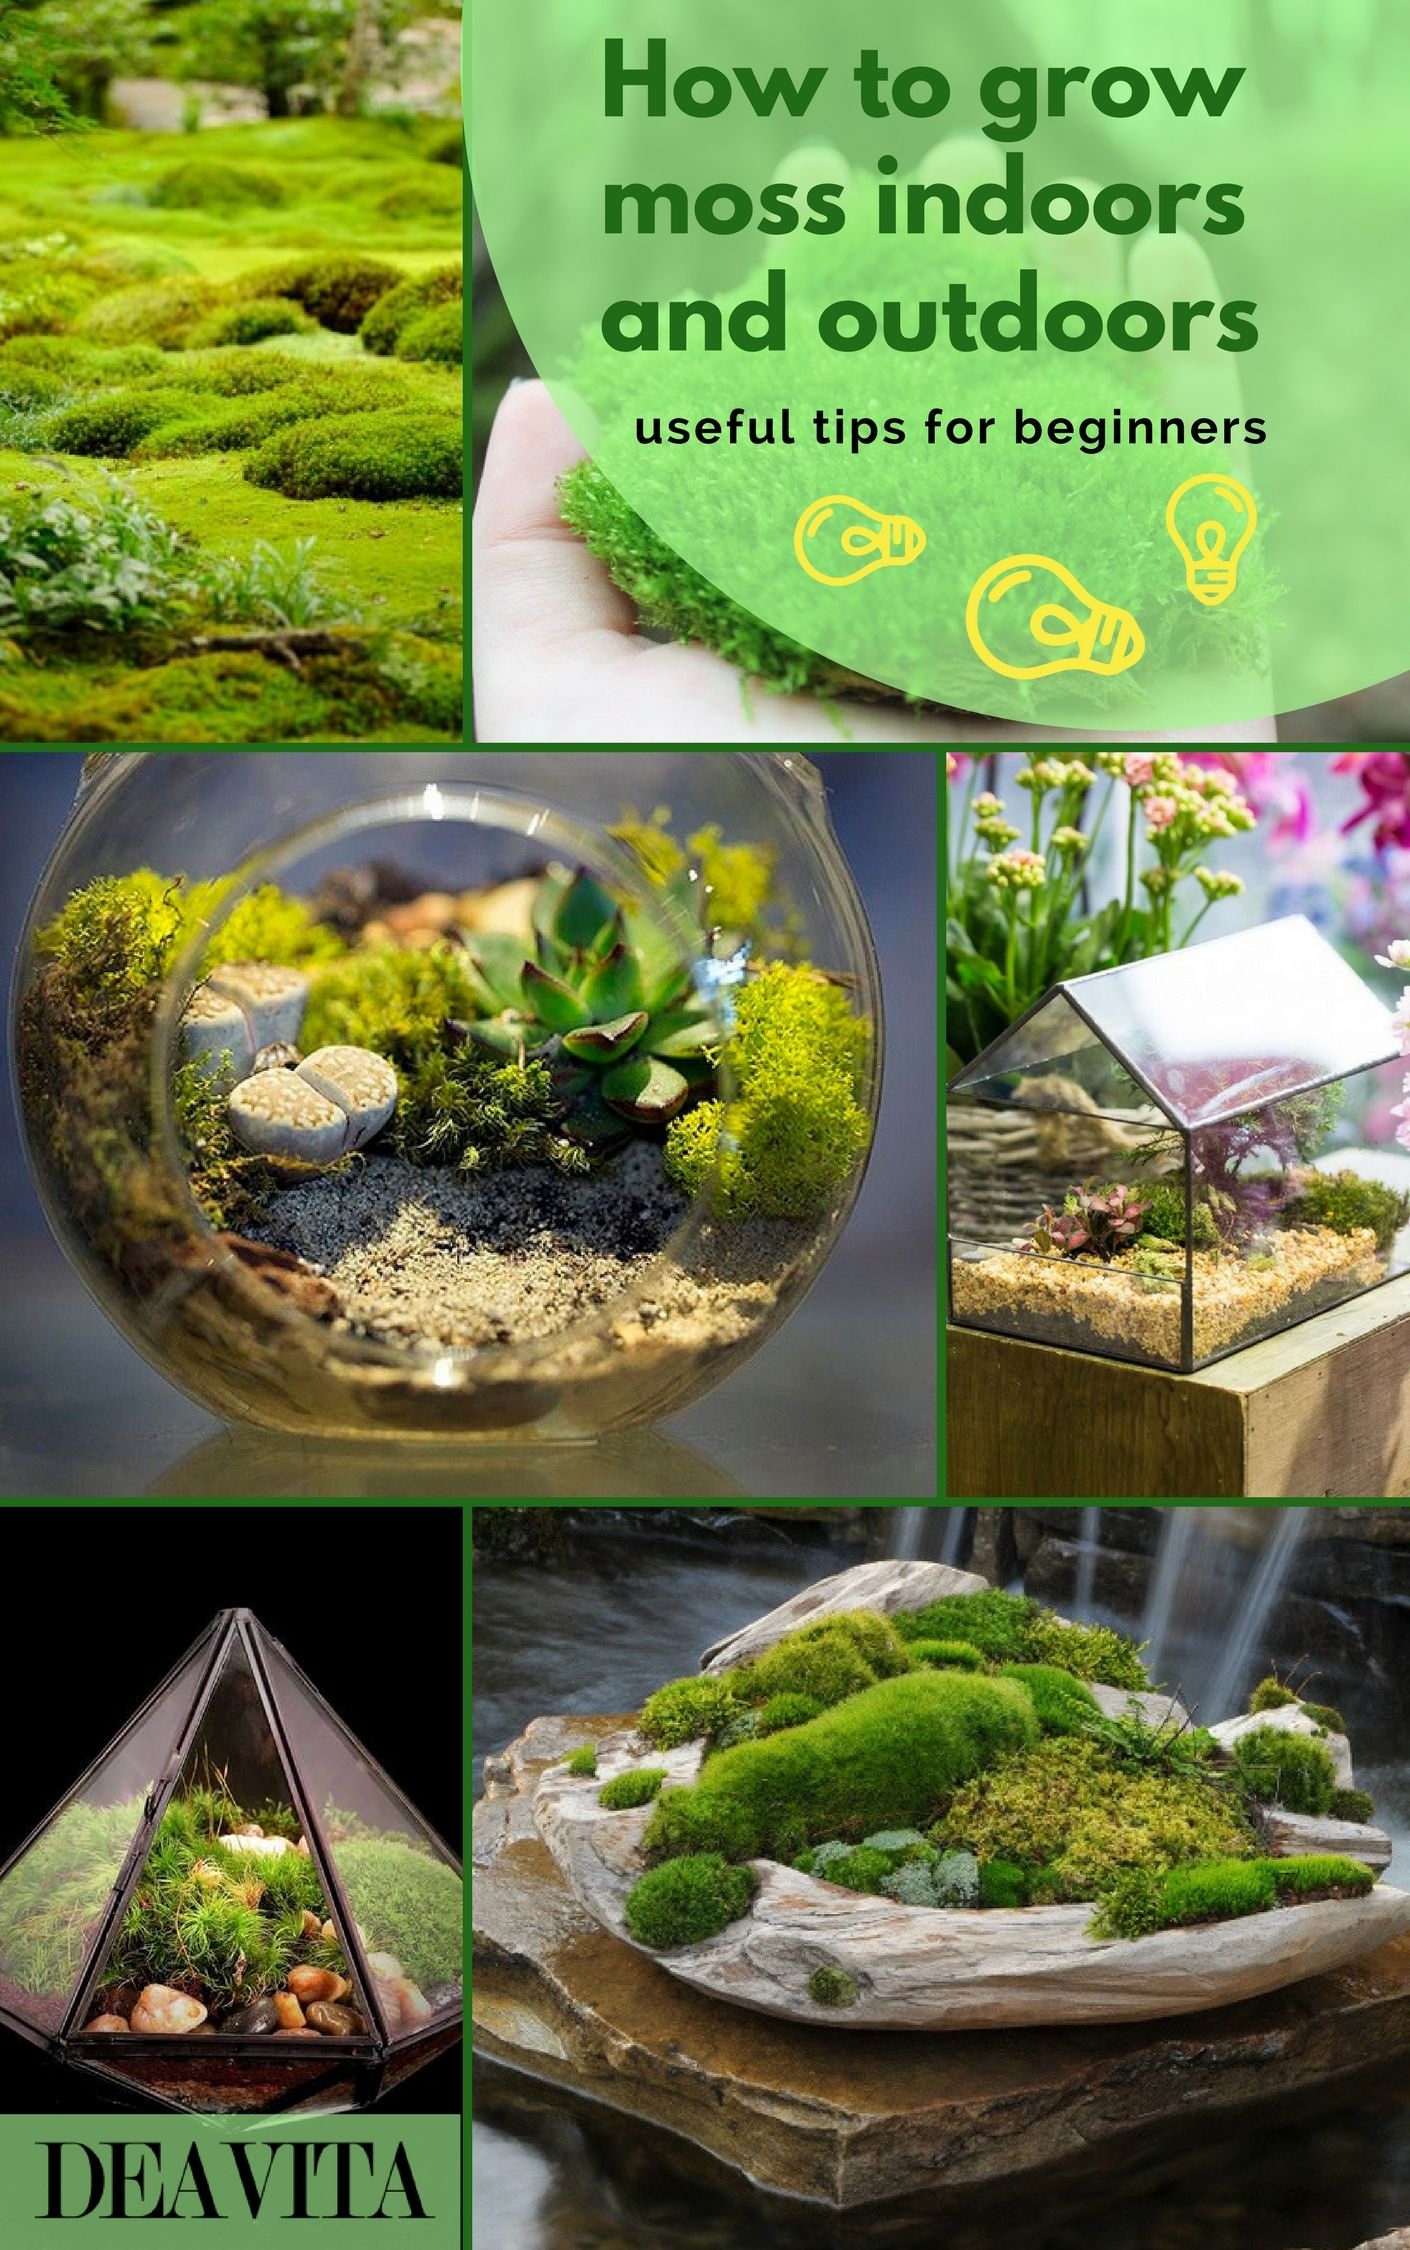 How To Grow Moss Indoors And Outdoors Useful Tips For Beginners